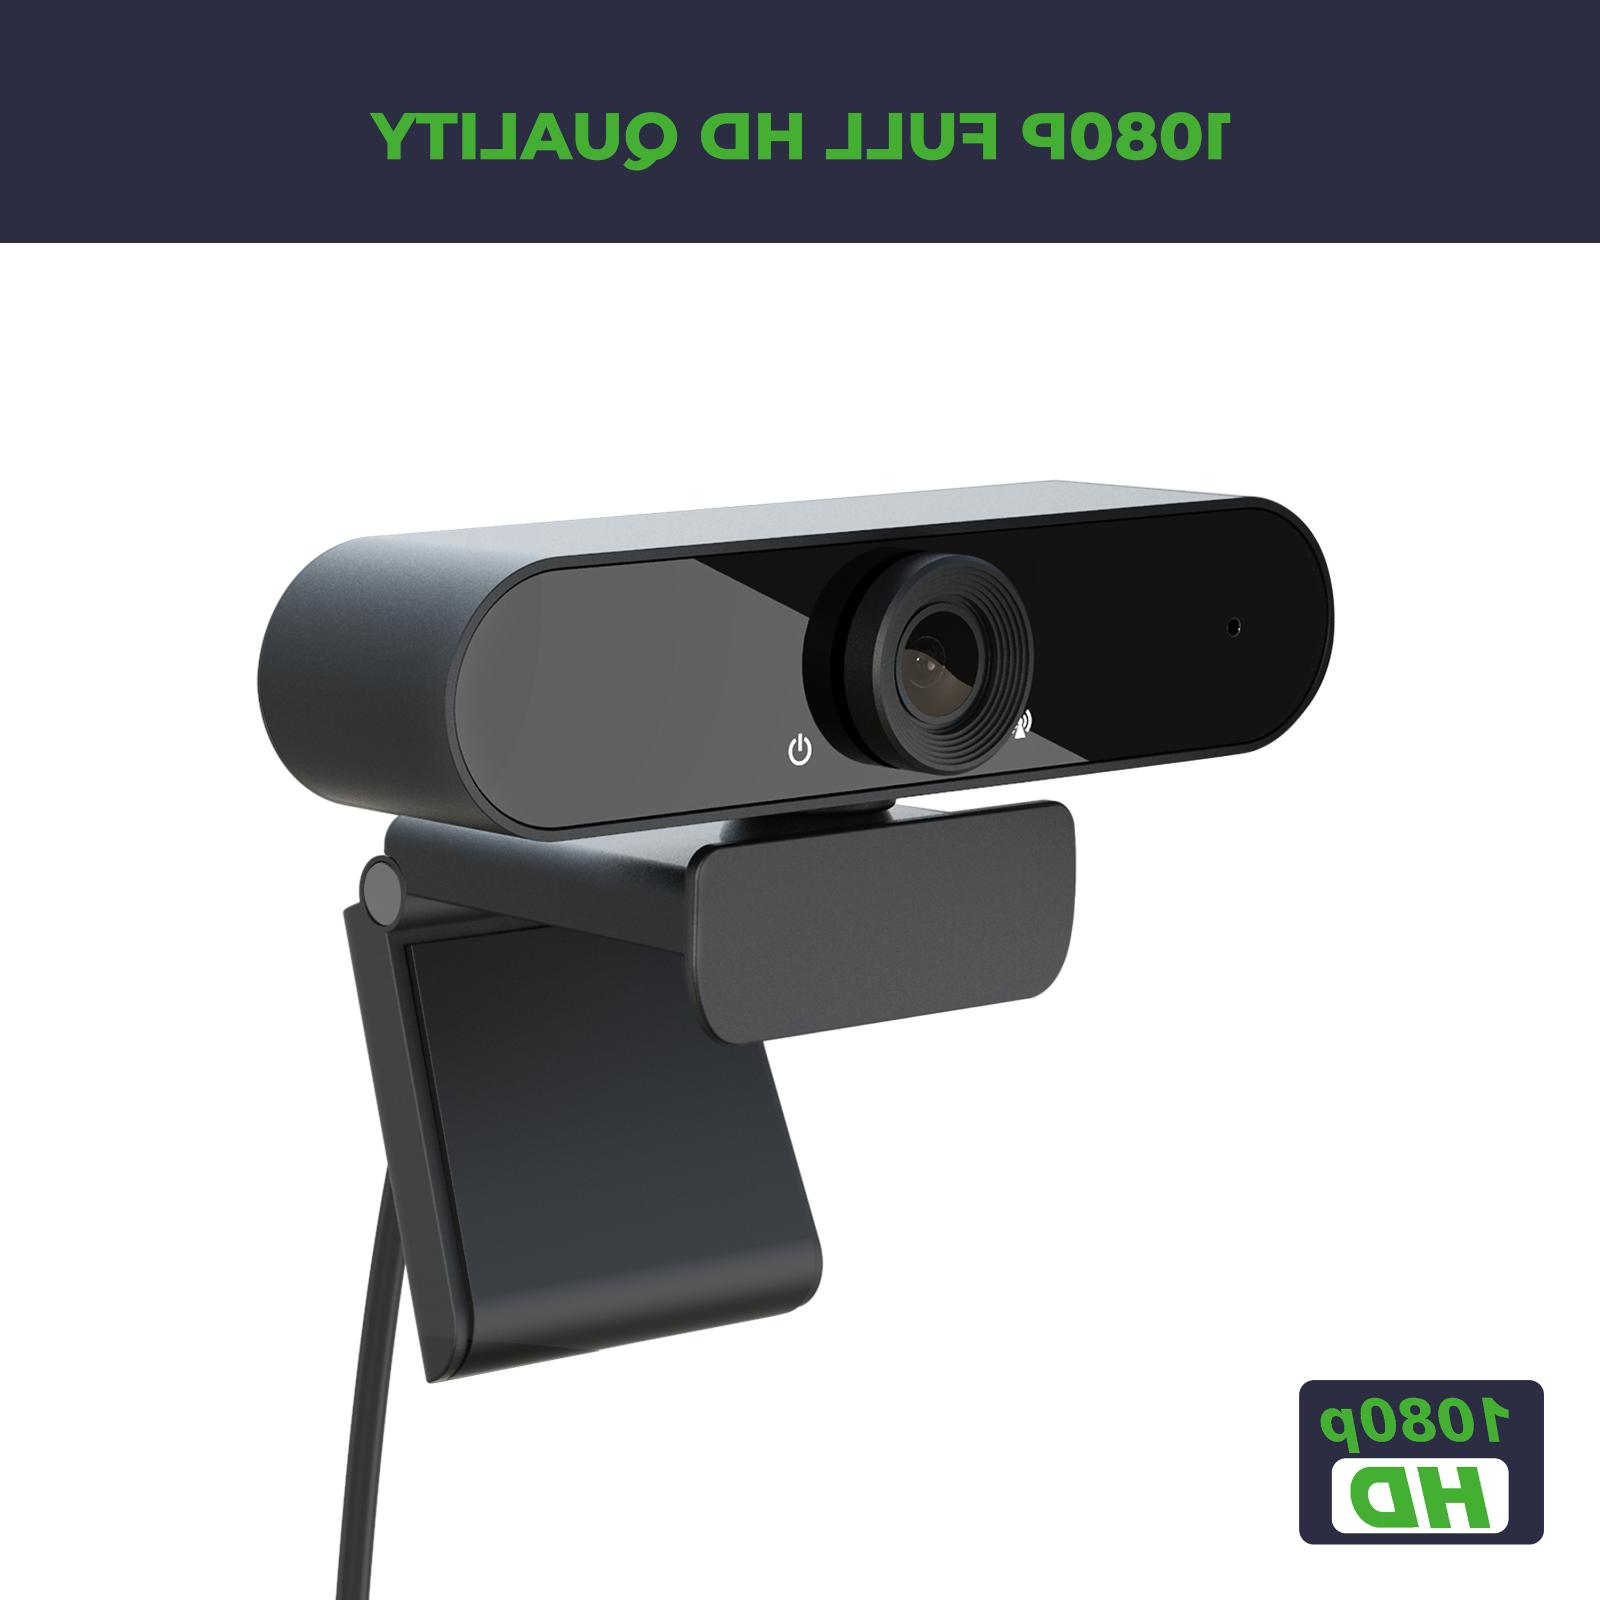 1080p Webcam with for webinars, recording